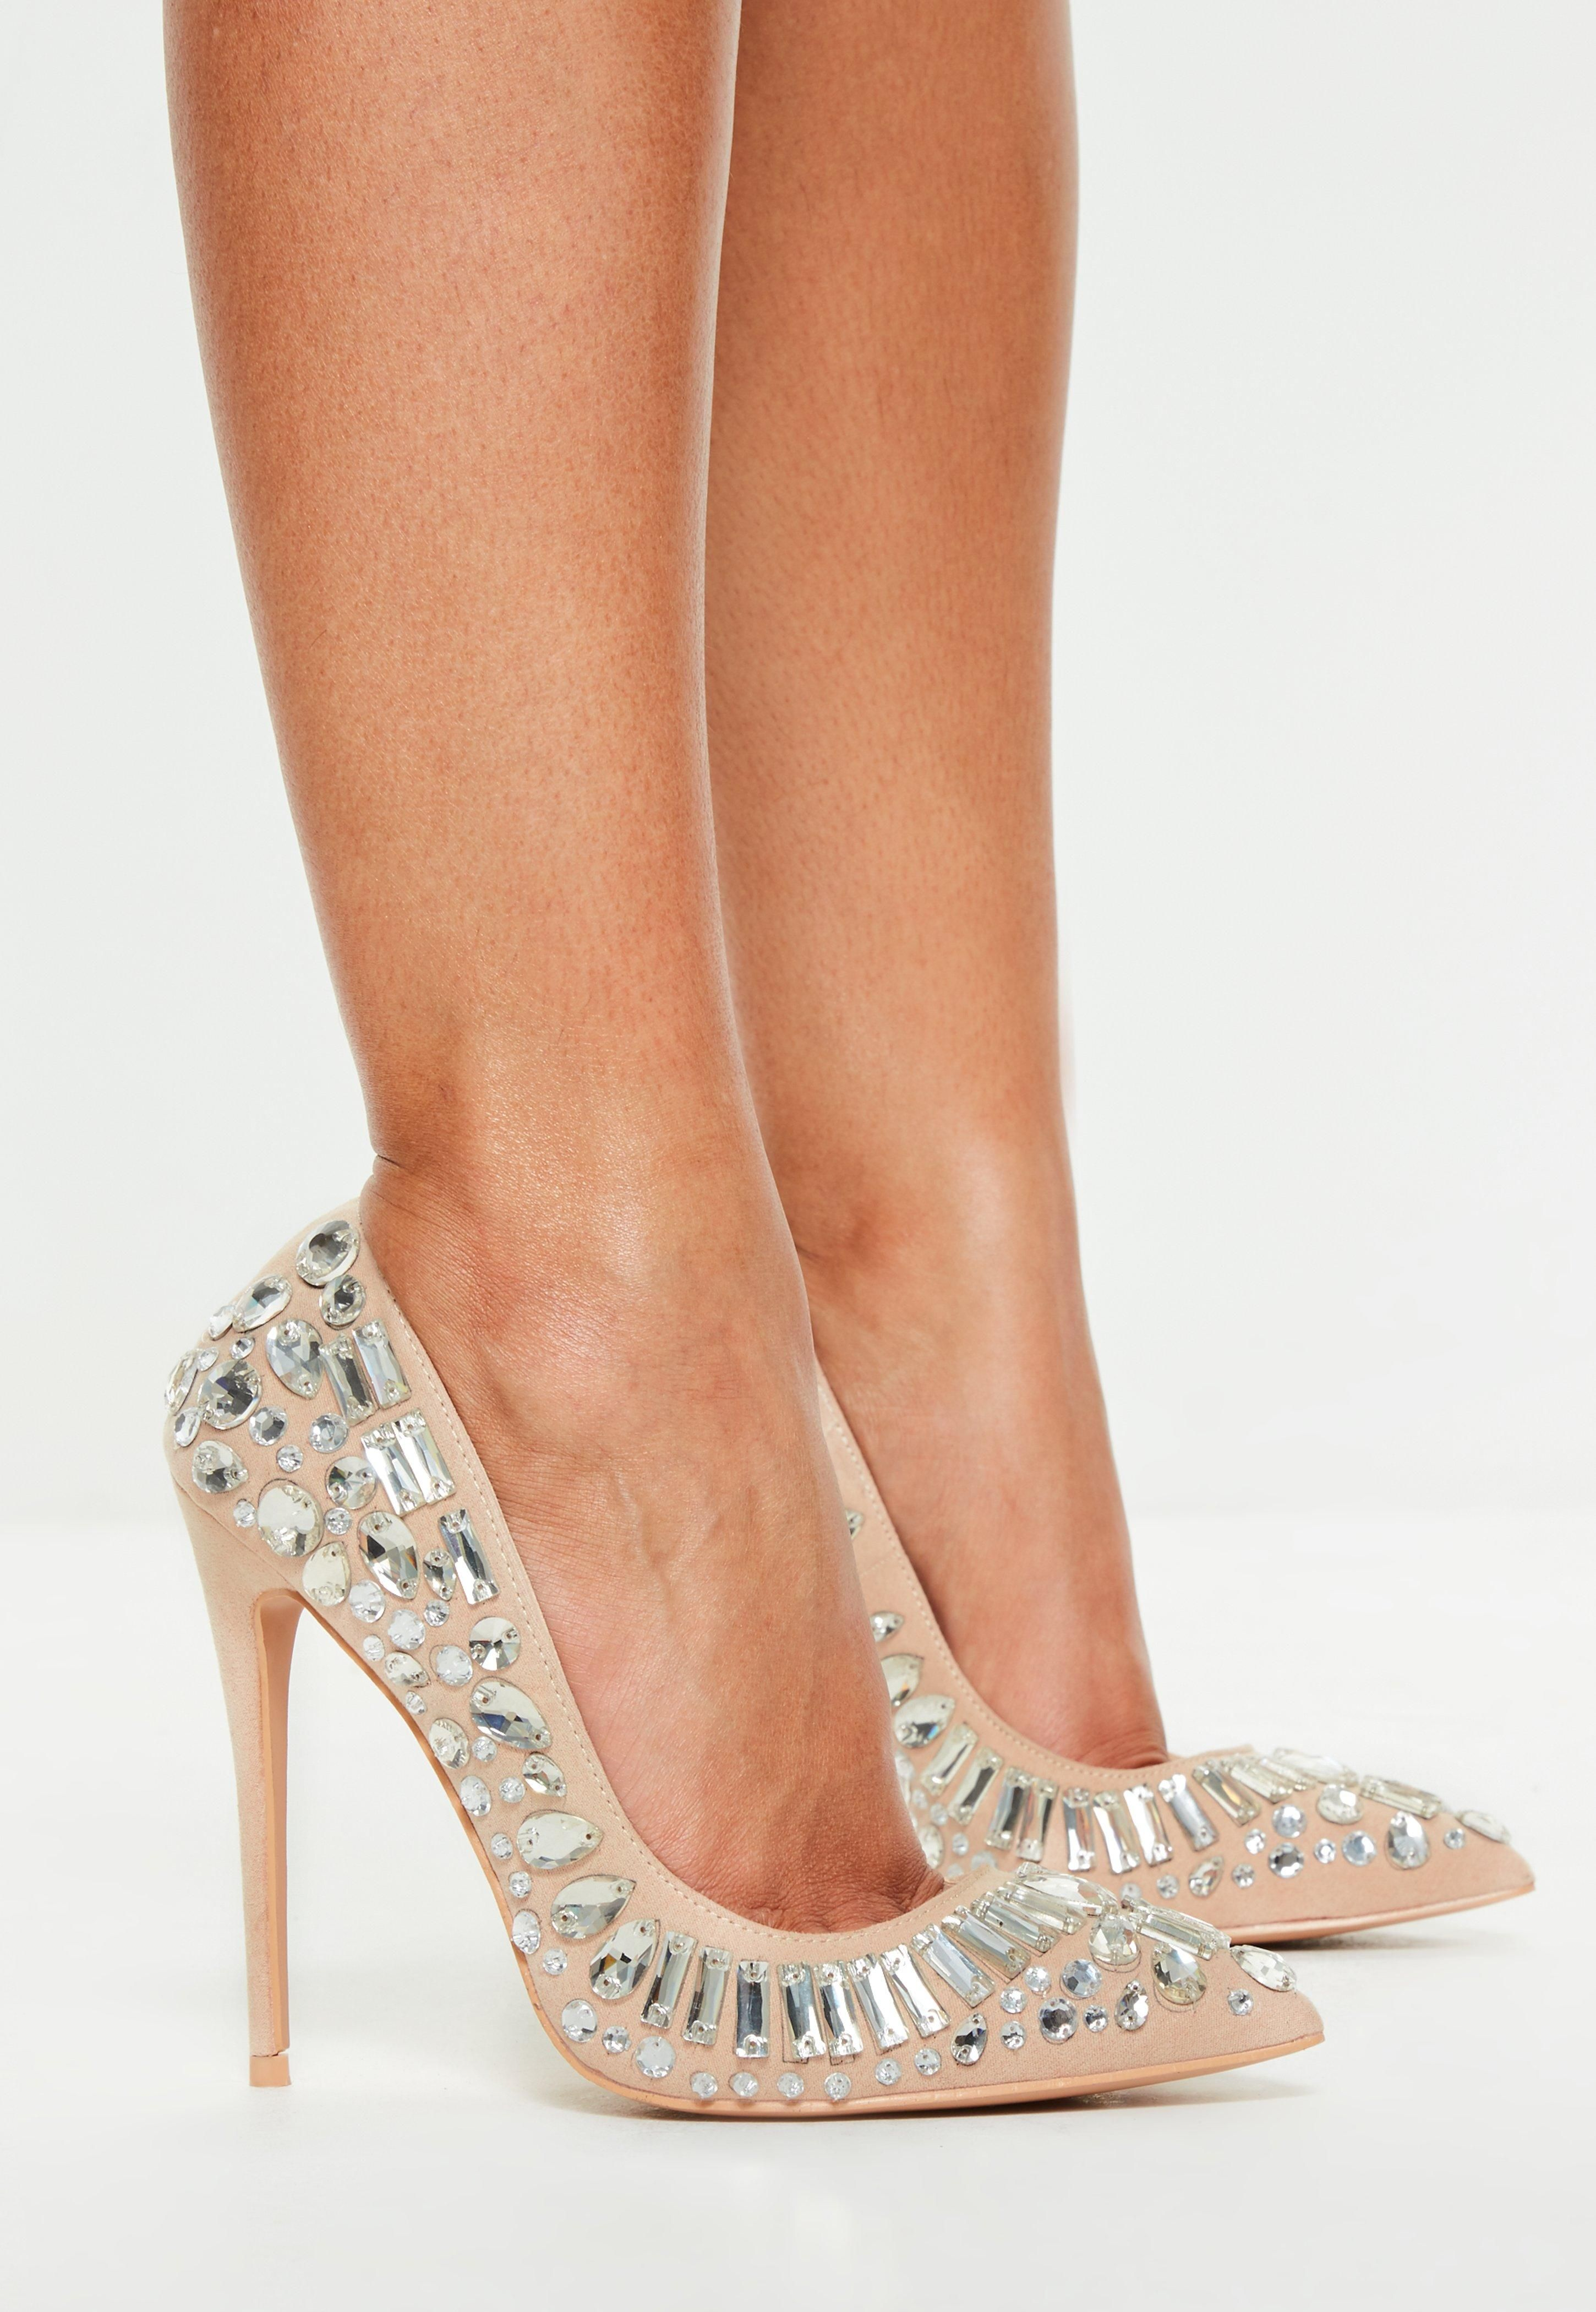 These nude pointed toe heeled mules with clear cover to